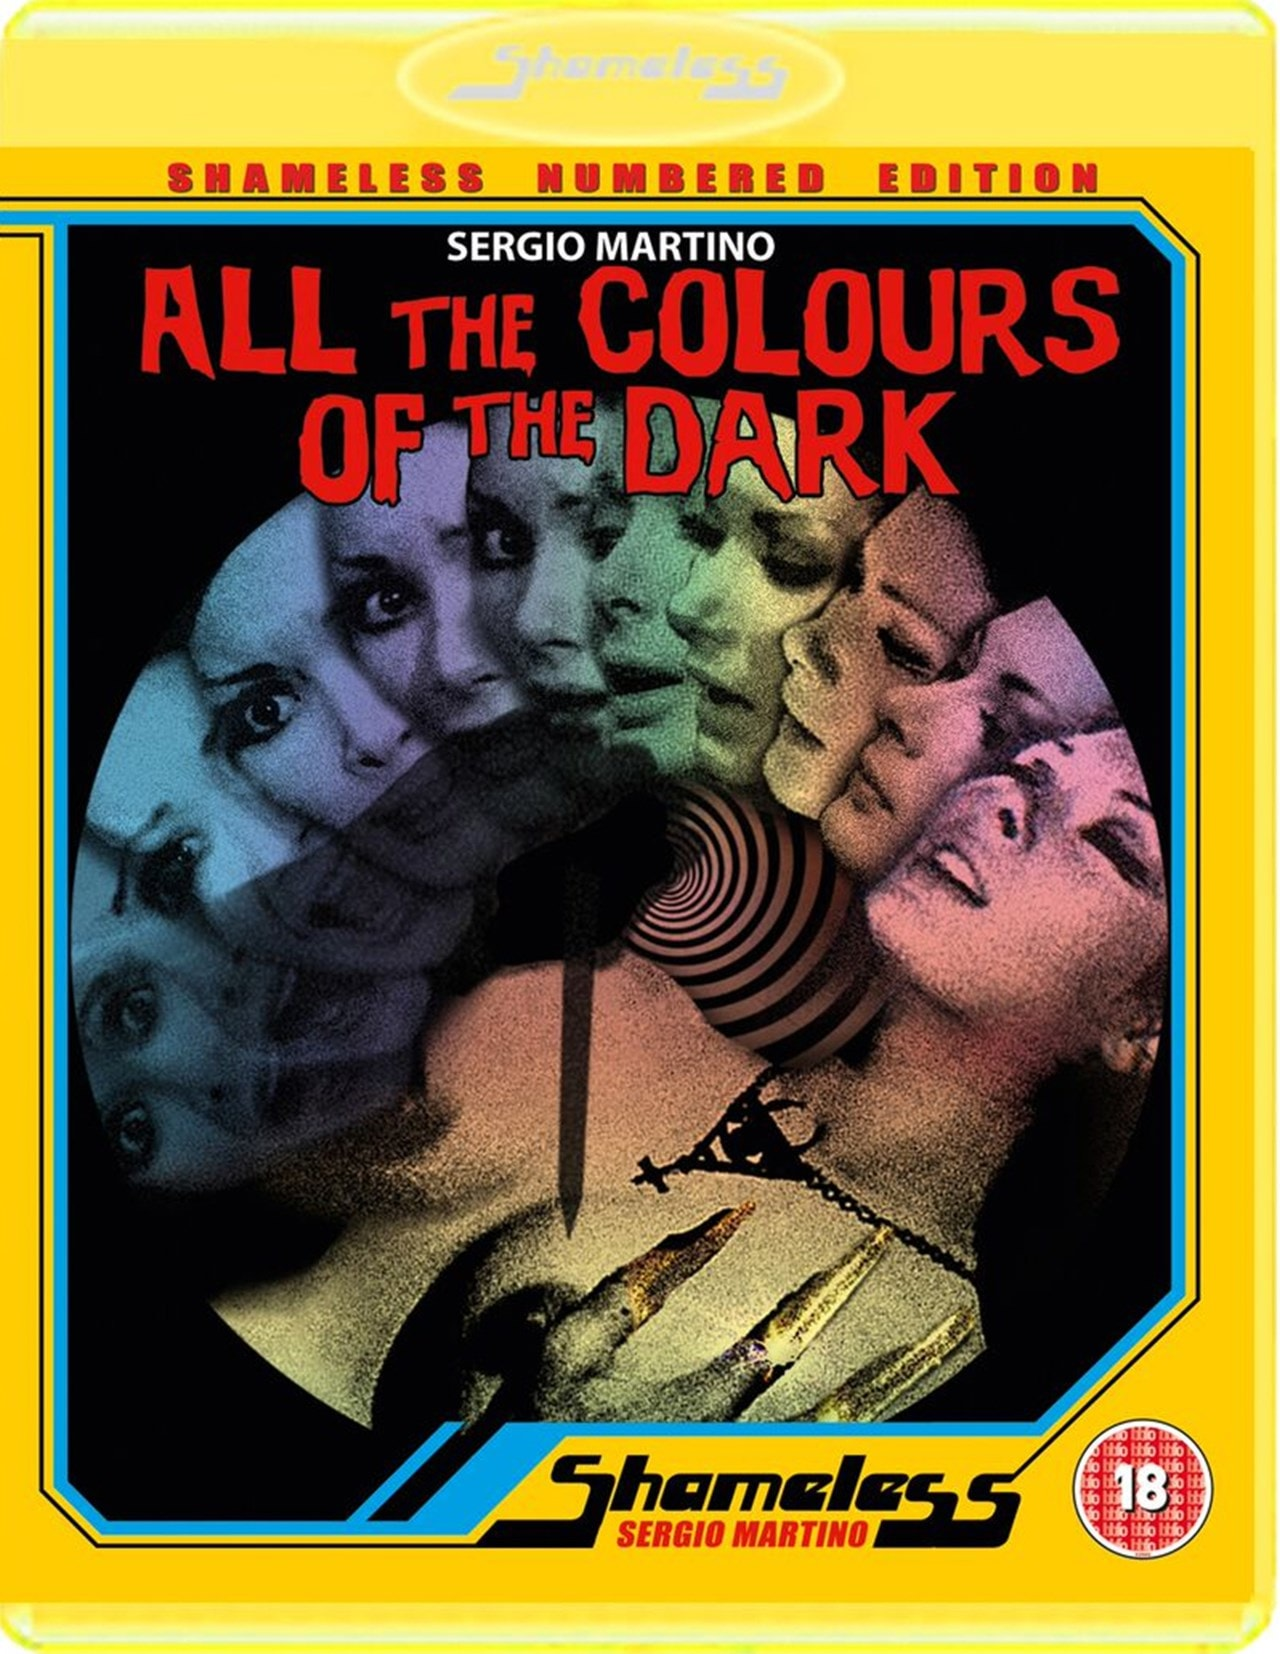 All the Colours of the Dark - 1